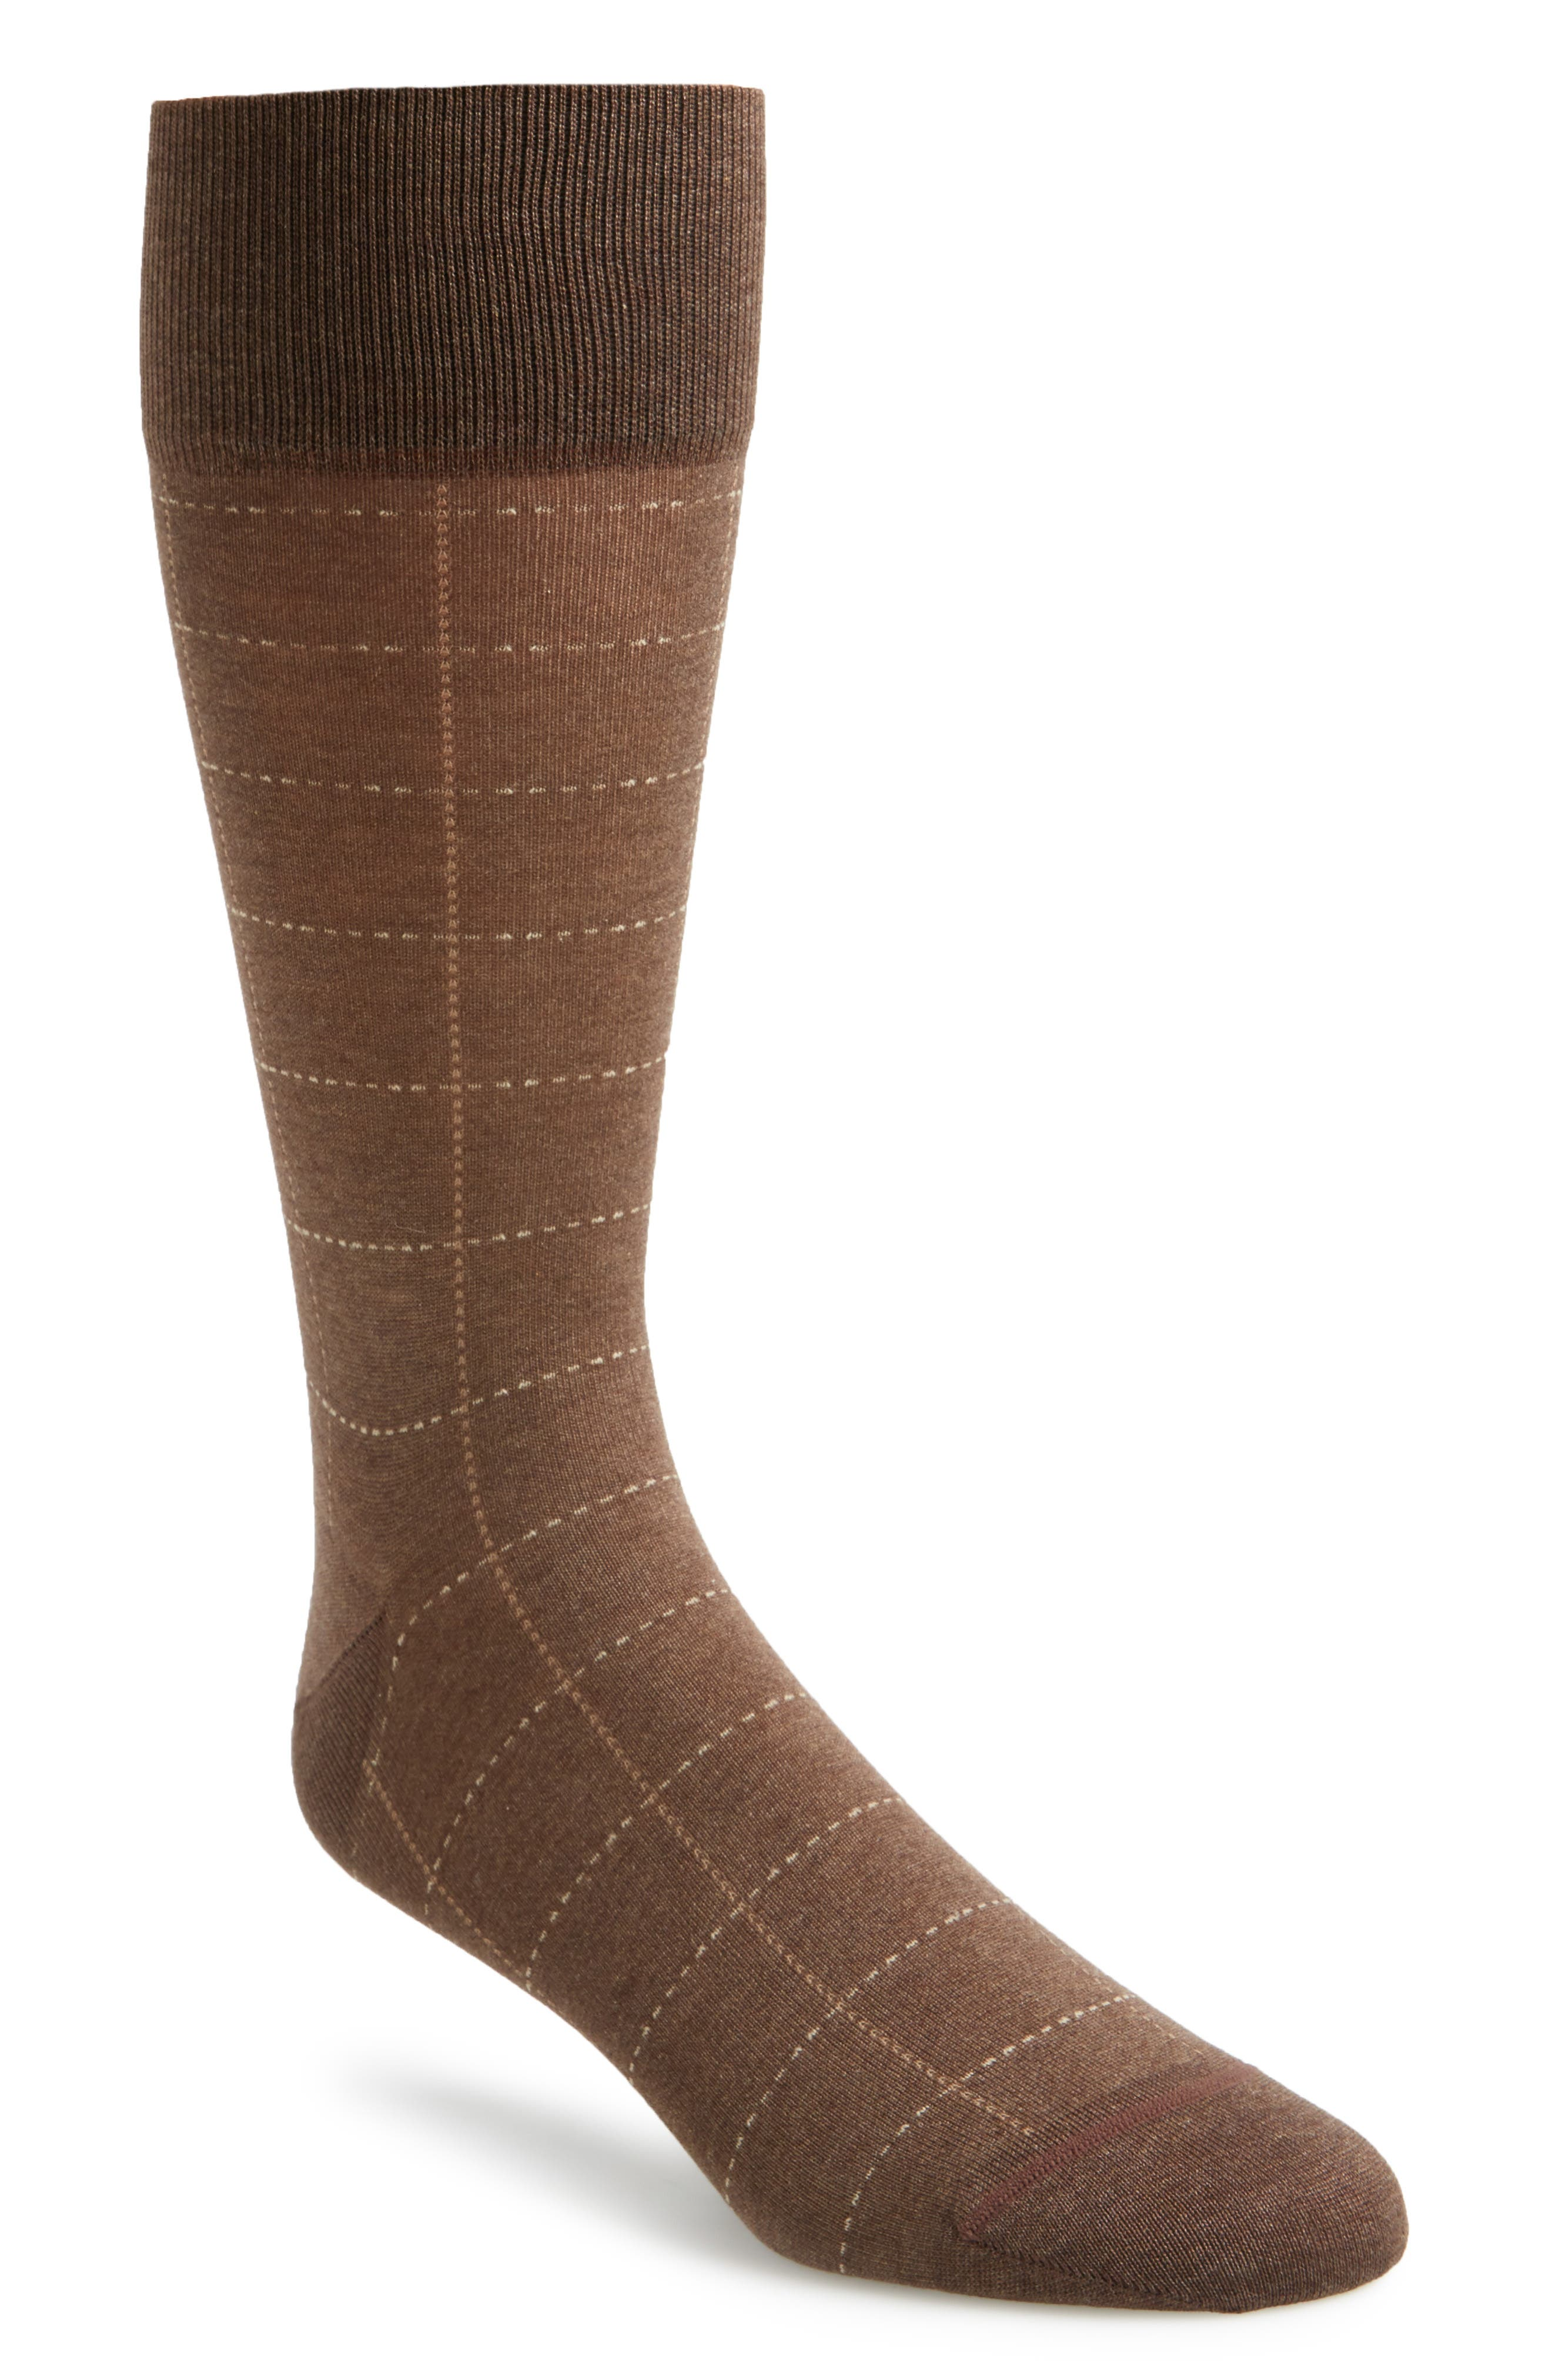 Alternate Image 1 Selected - John W. Nordstrom® Broken Grid Socks